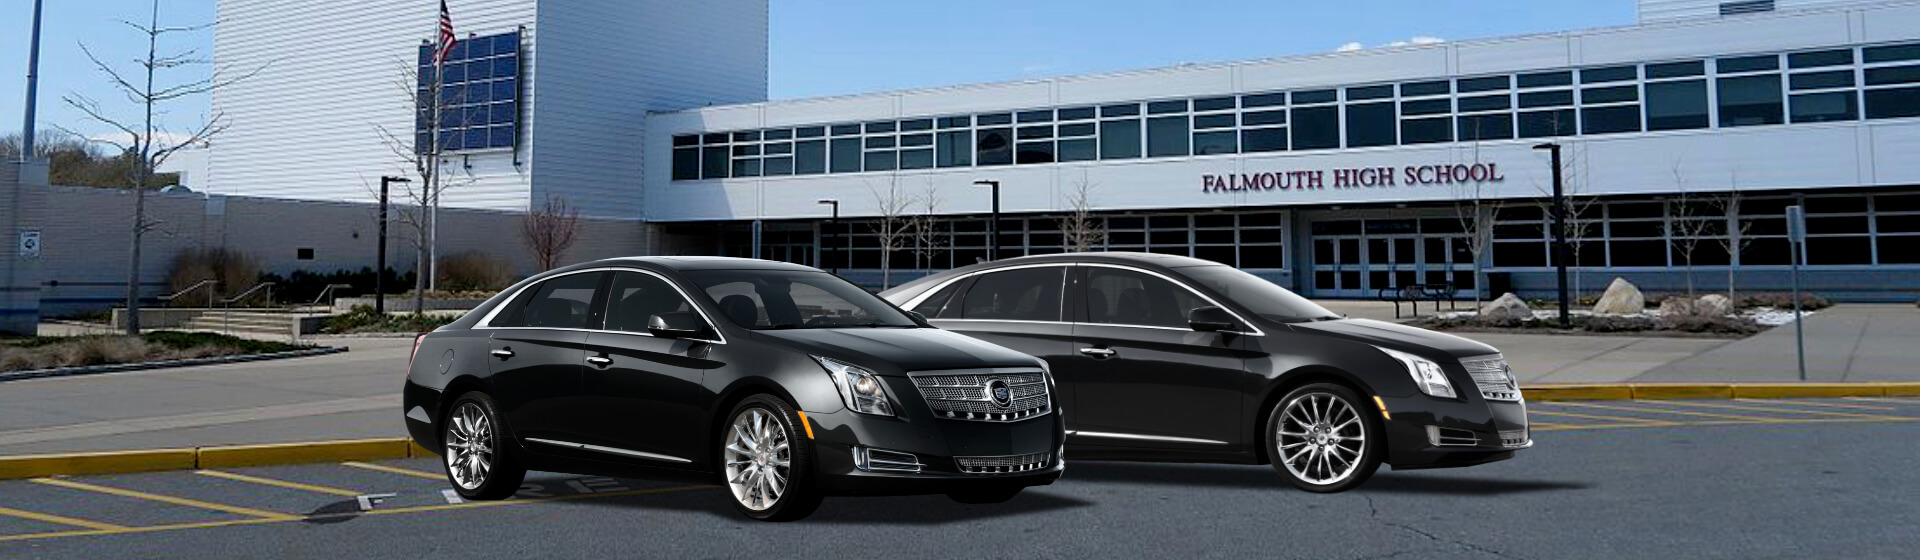 Boston to Falmouth, MA Car and Limousine Services